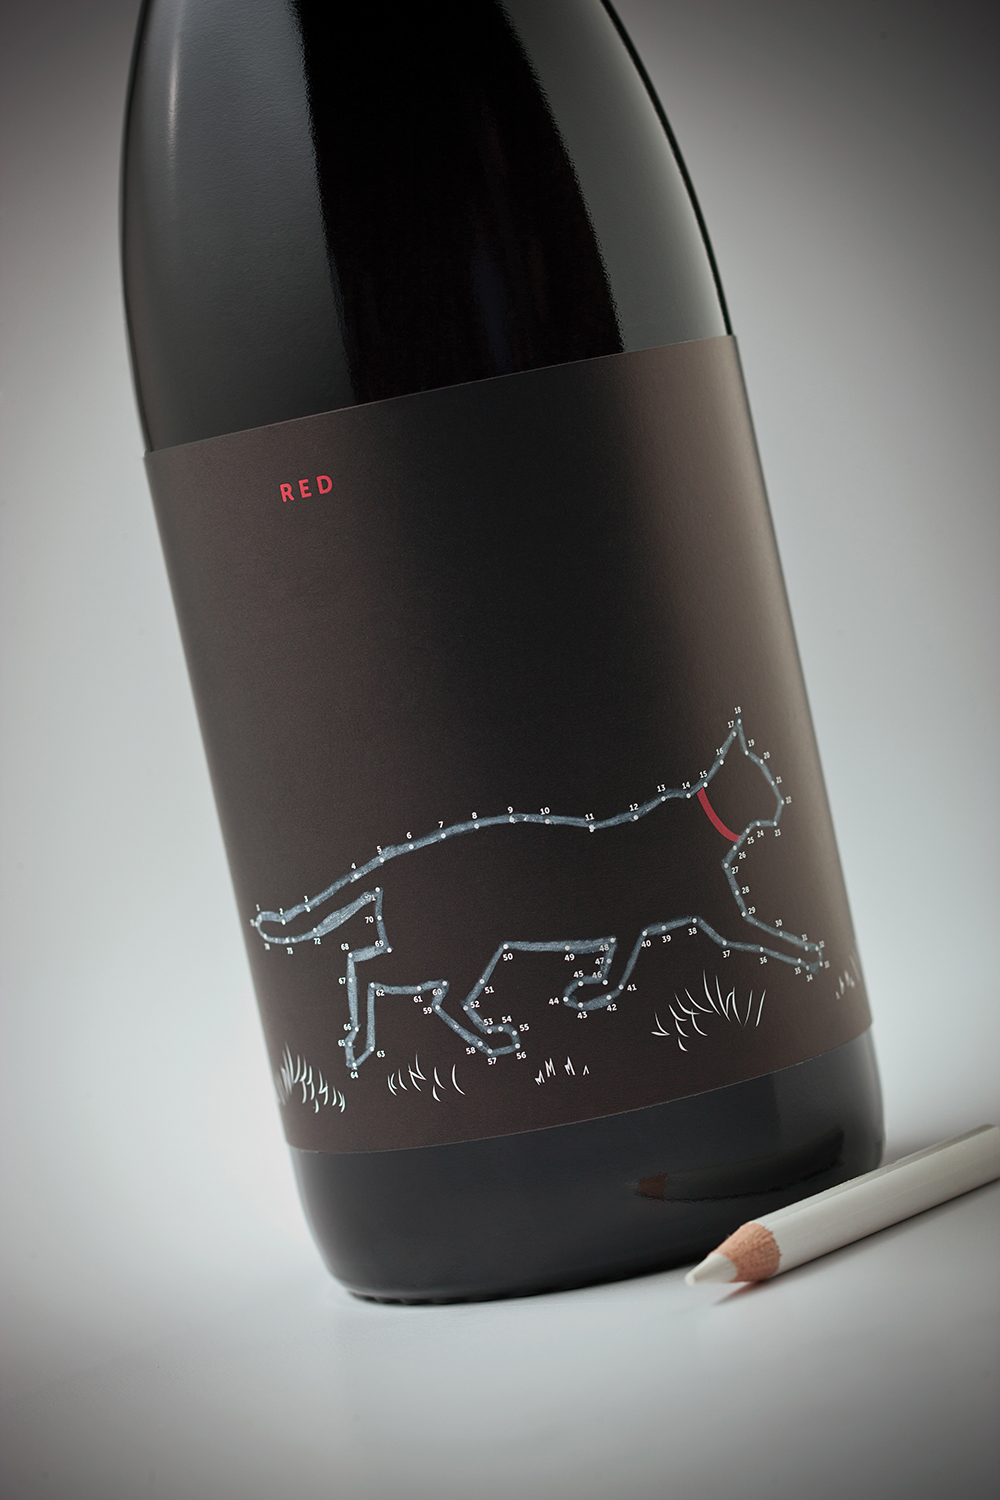 wine Cargill point written drawn Label red Cat dog Pet colored drink Alchlaol bottle gift